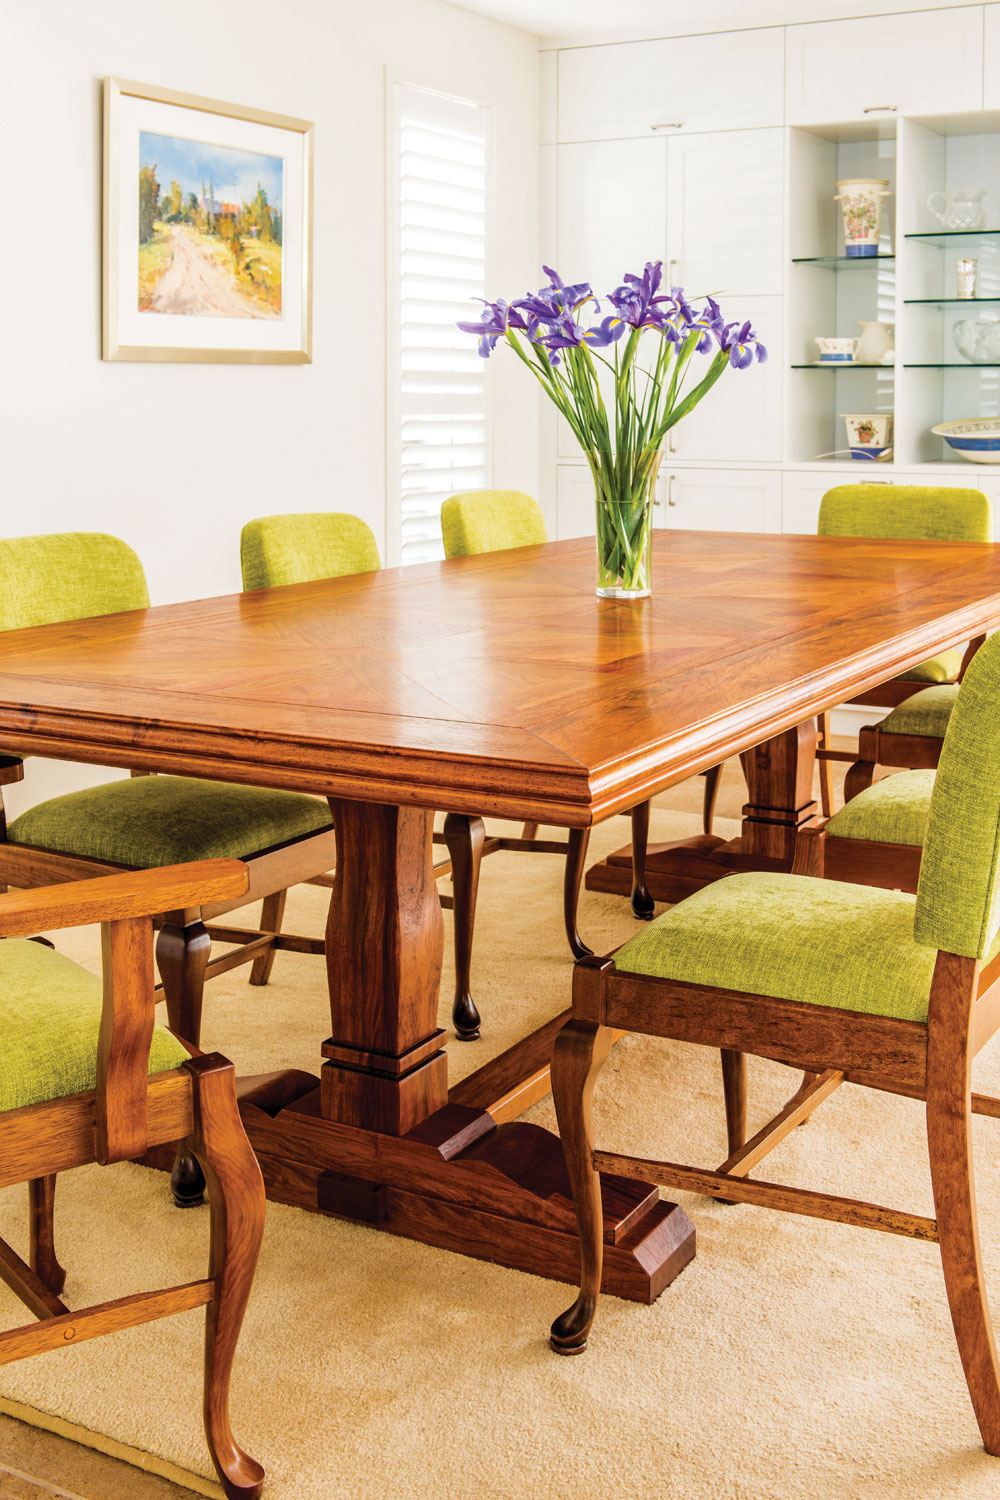 5 tips to consider when buying a custom dining set